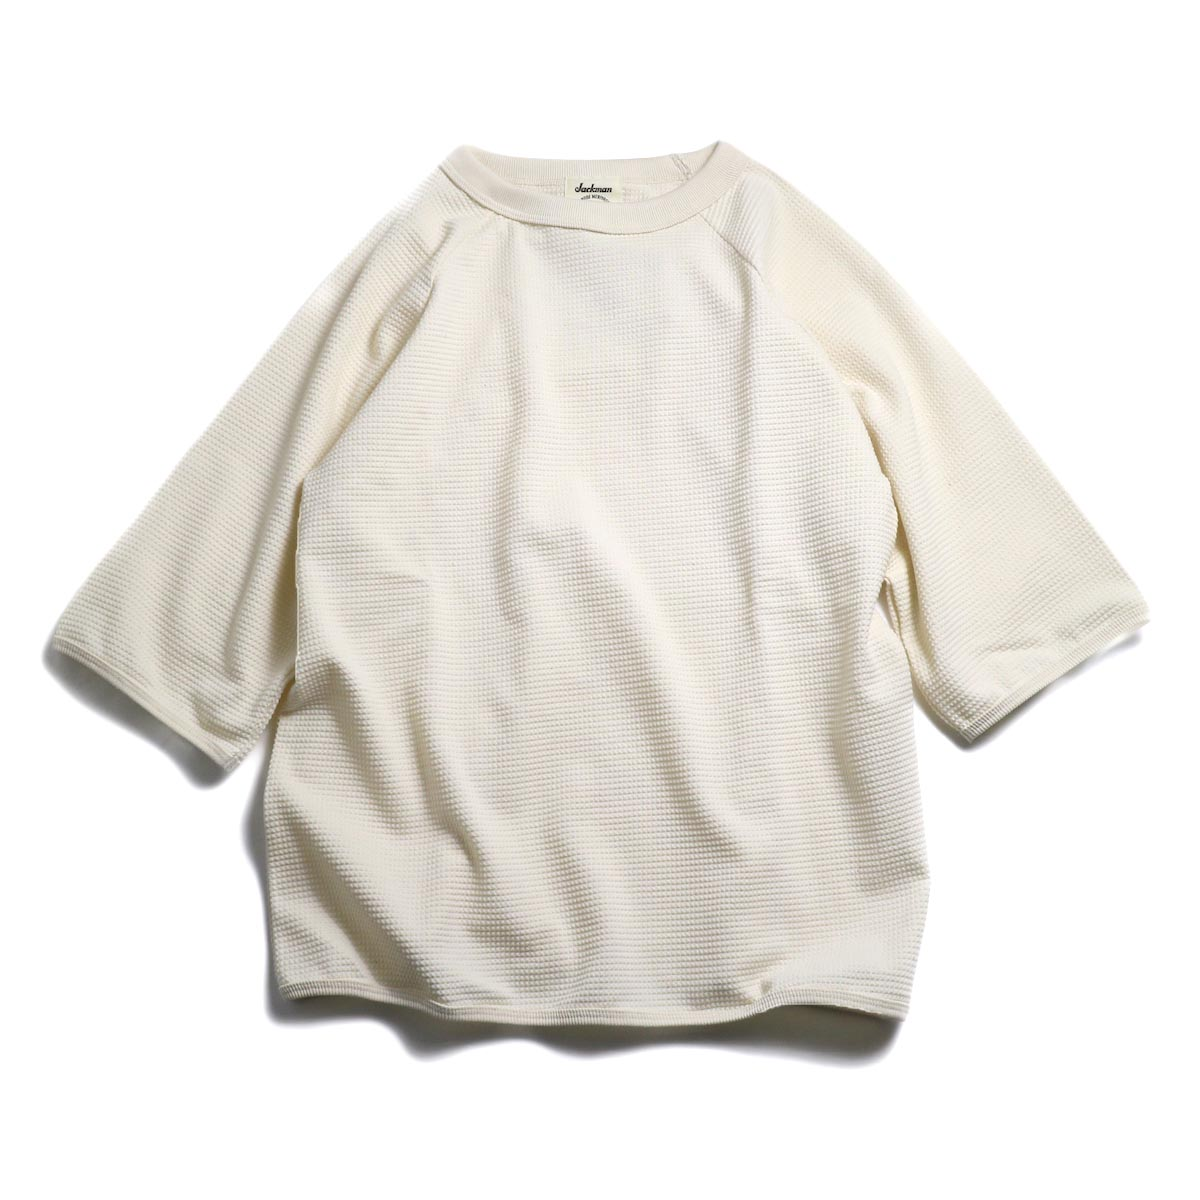 Jackman / 1/2 Sleeved T-Shirt -Ivory